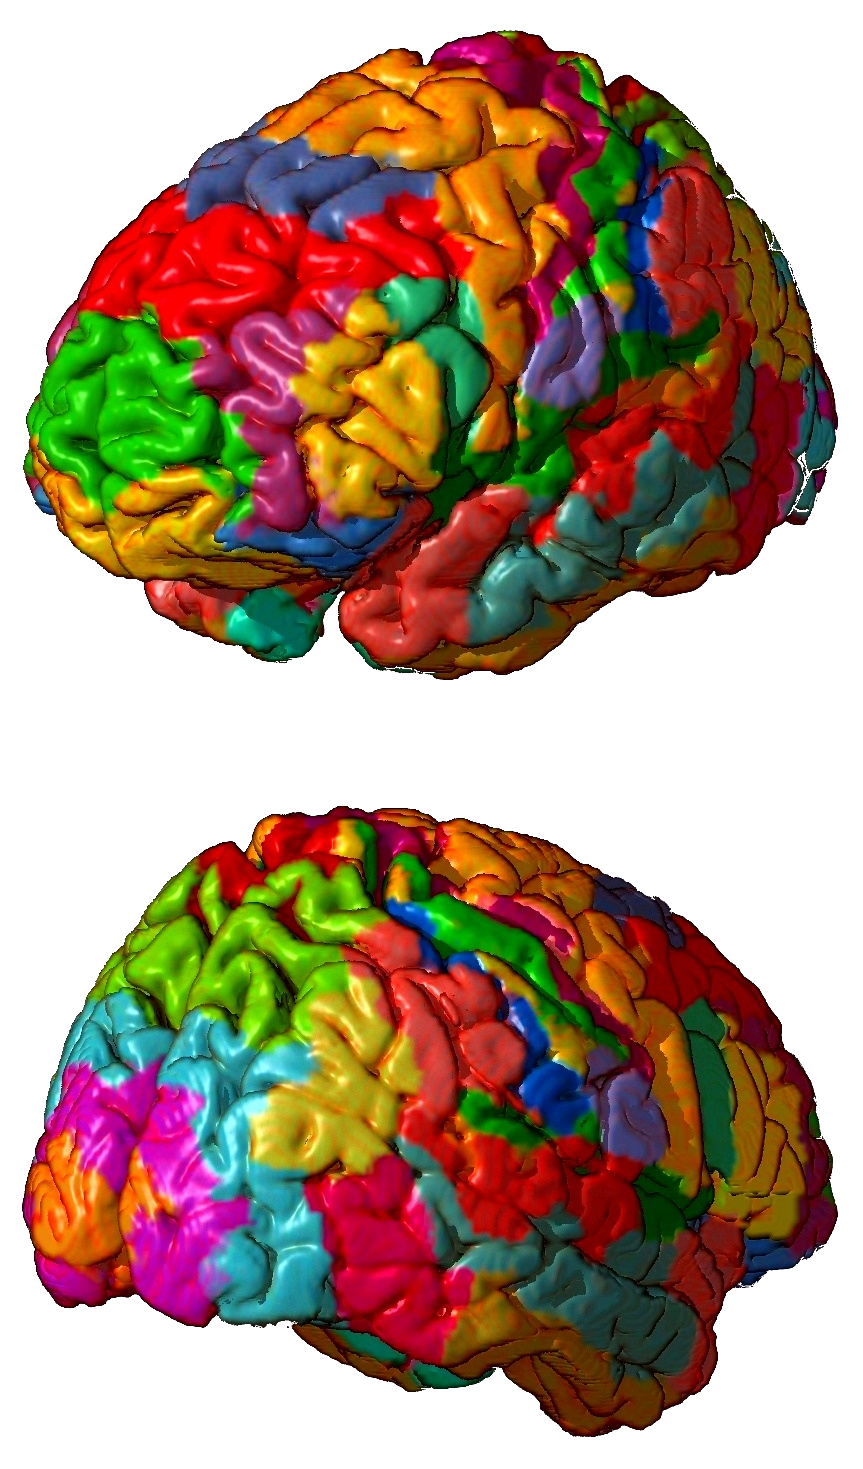 Brodmann Area Wikipedia Simple Diagram Of The Human Brain Showing Its Primary Divisions